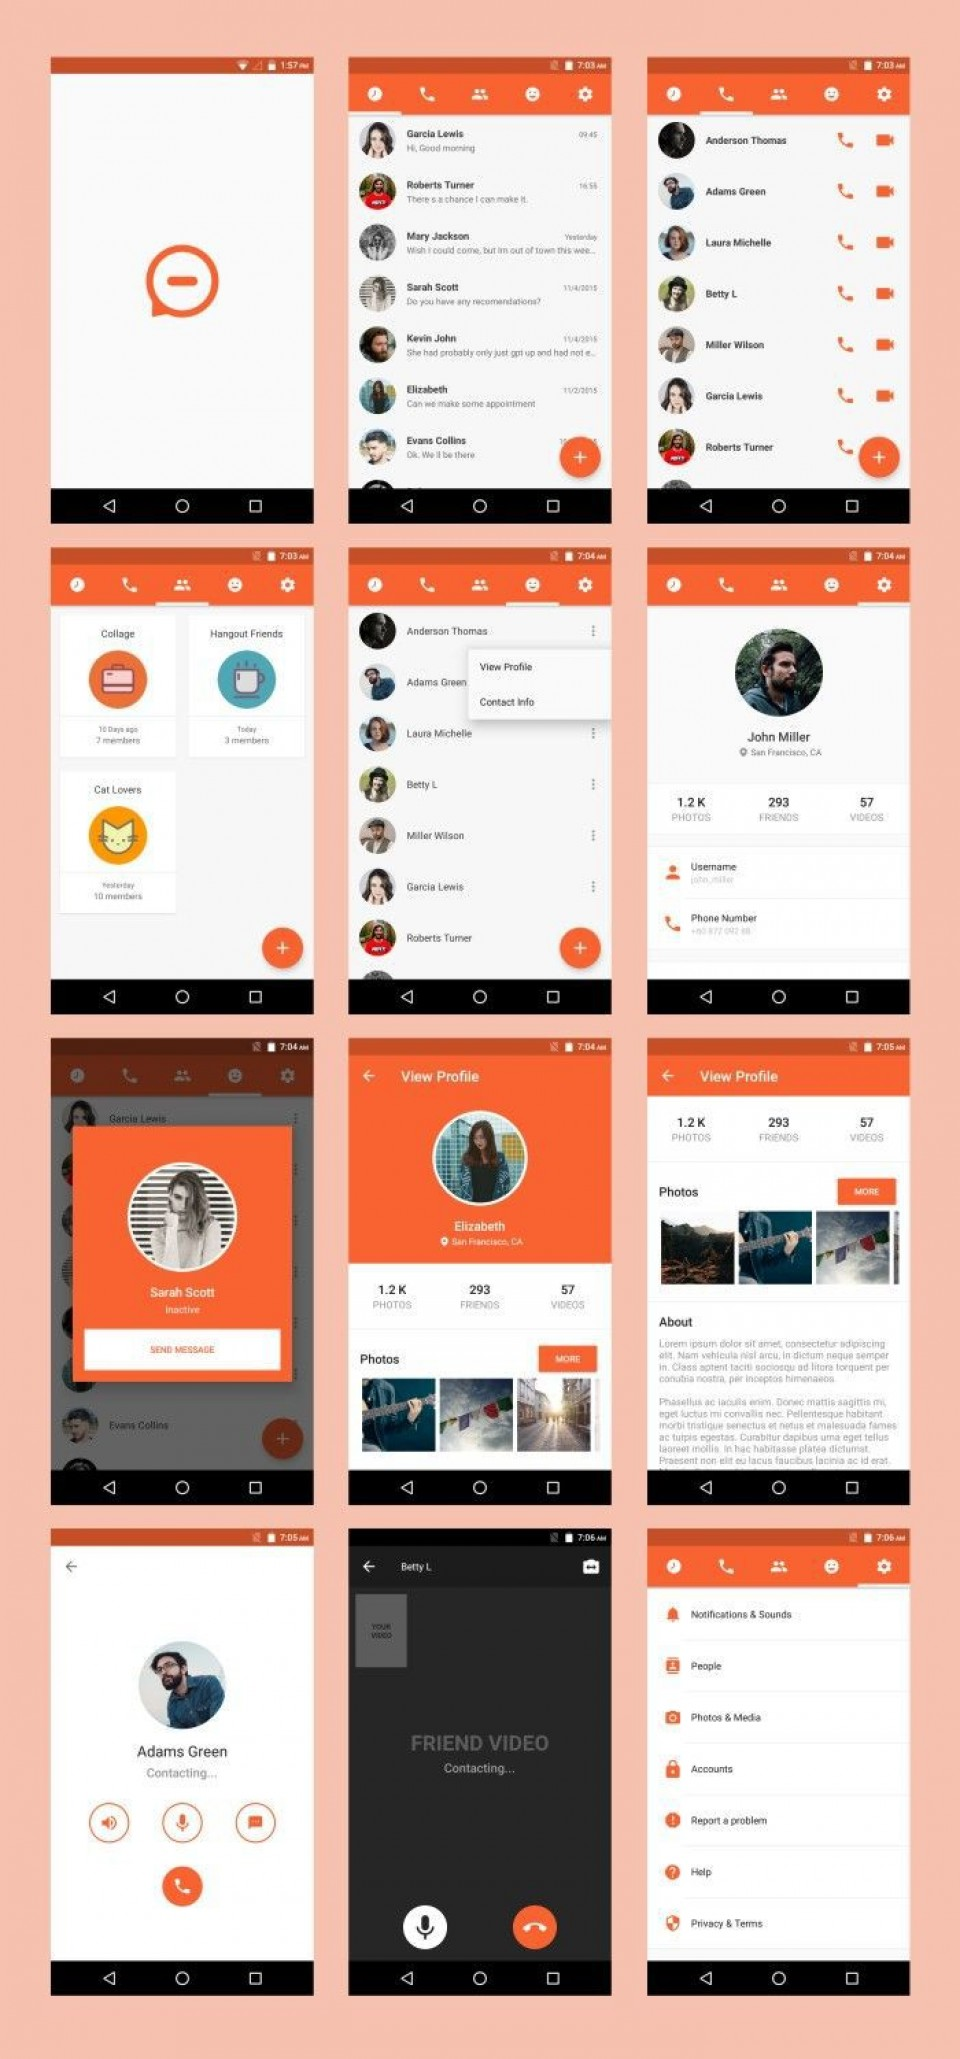 005 Surprising Android App Design Template High Def  Ui Free Source Code Xml960